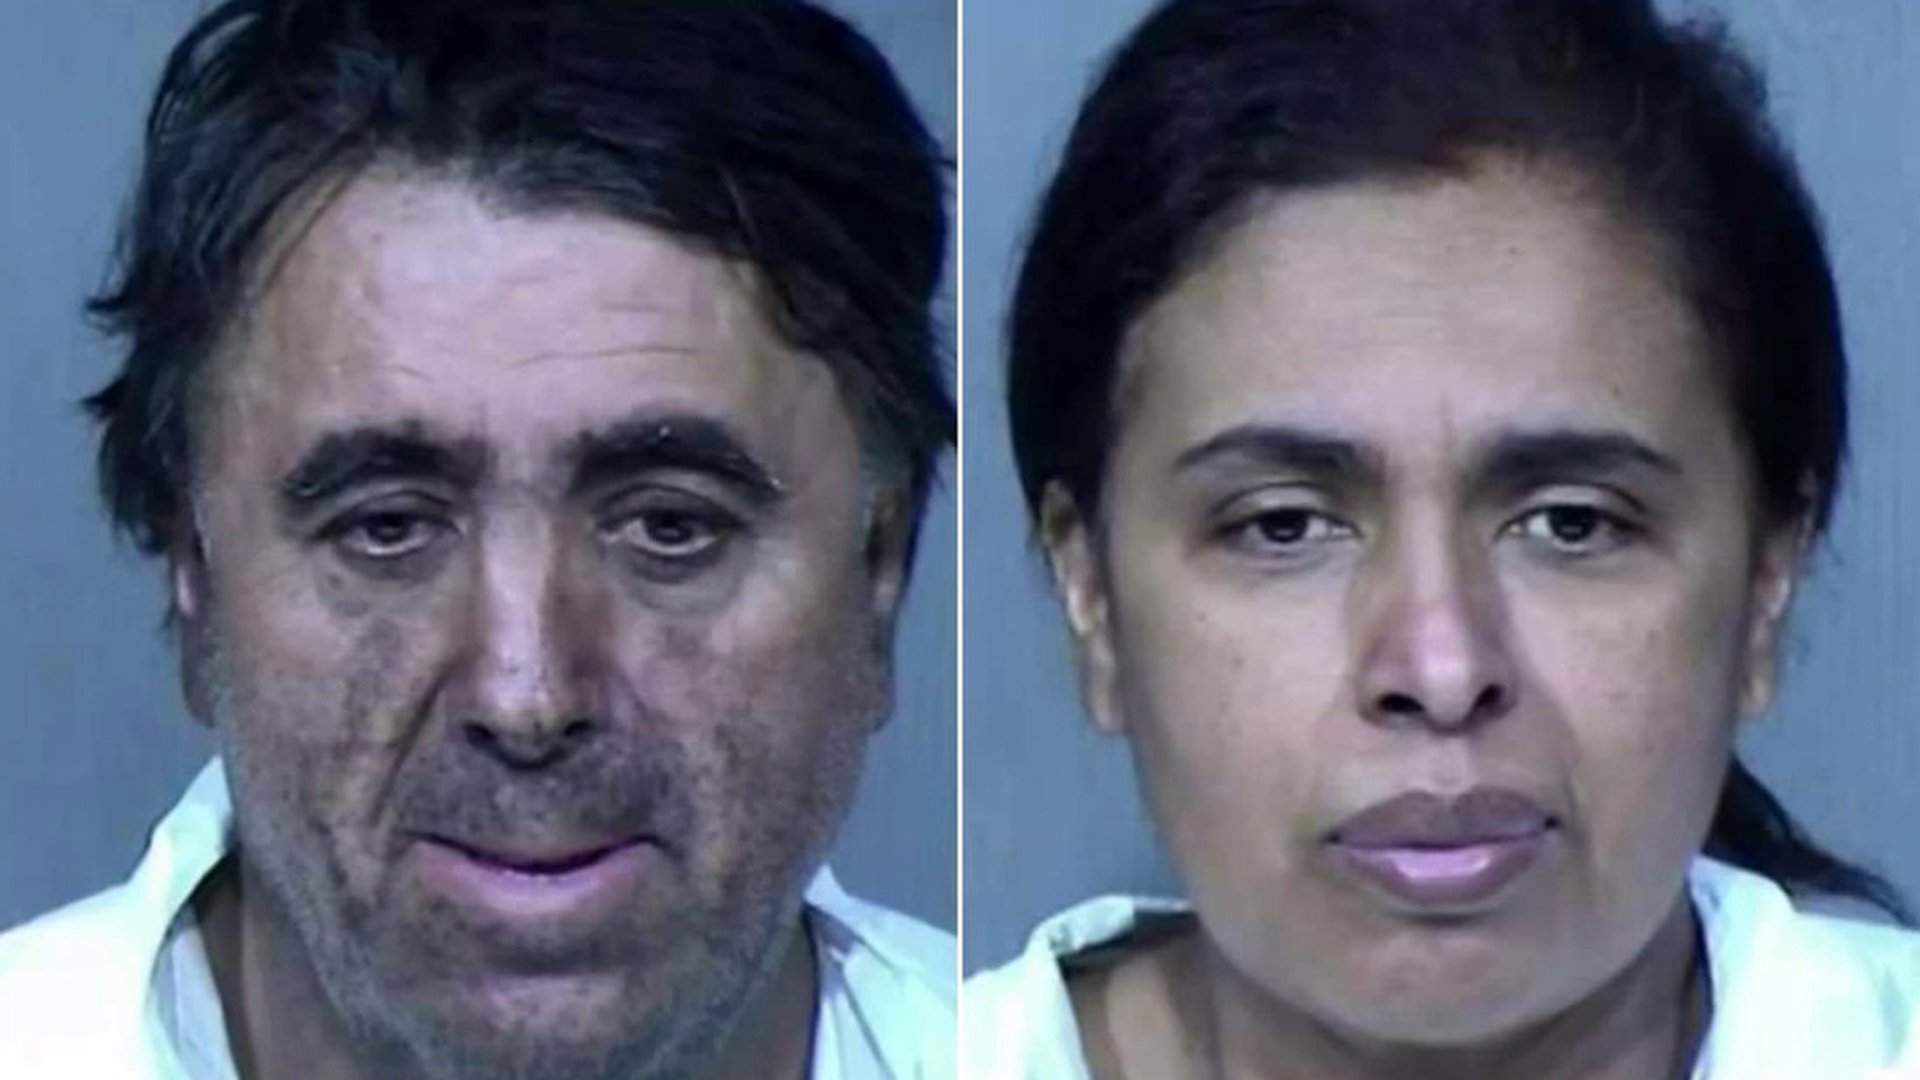 Rafael Loera, left, and Maribel Loera, right, are seen in booking photos.